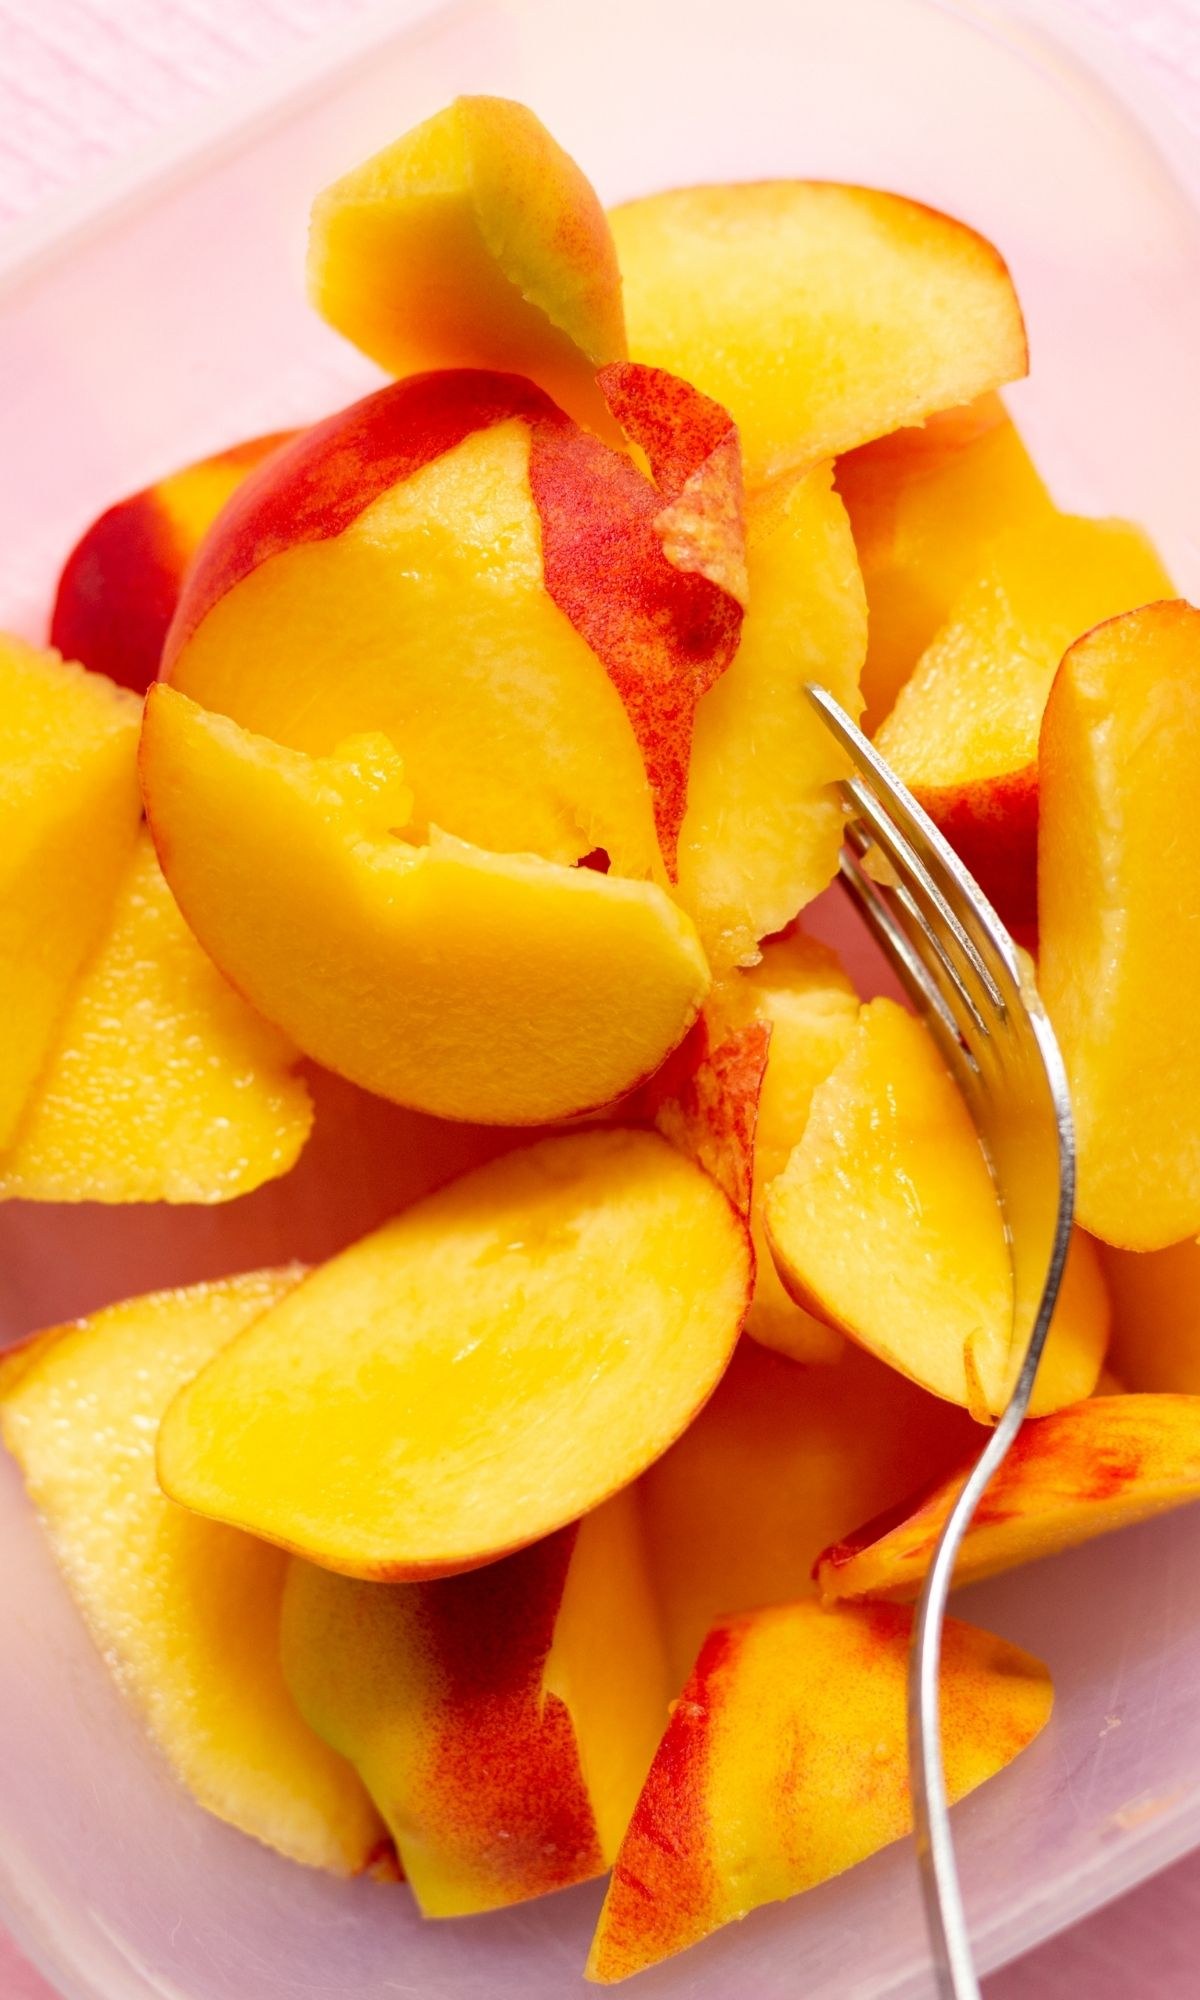 Sliced peaches with fork.